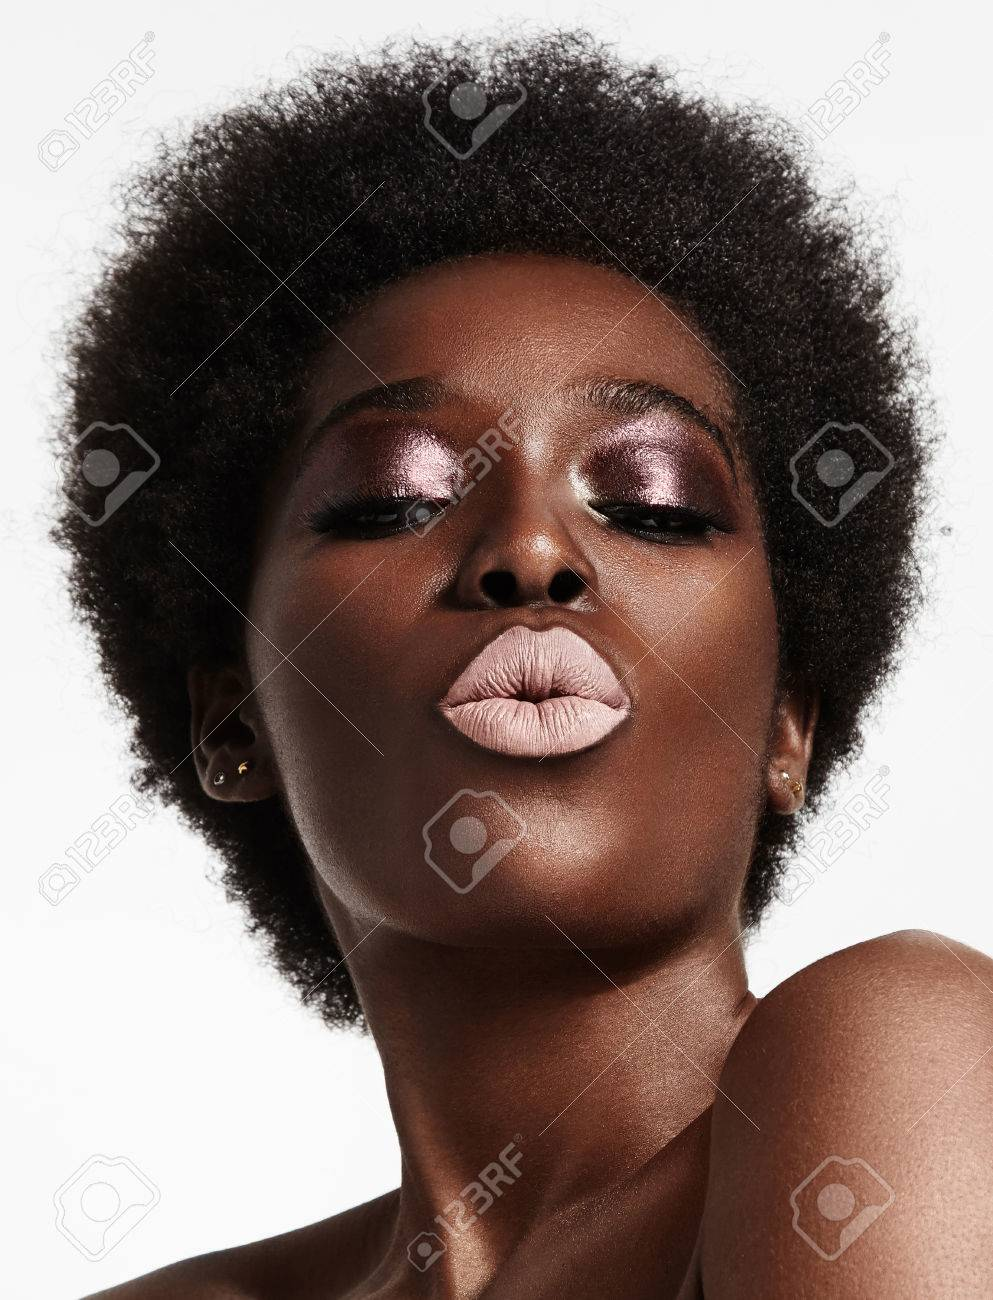 black woman with a short afra and bright lips - 45147414